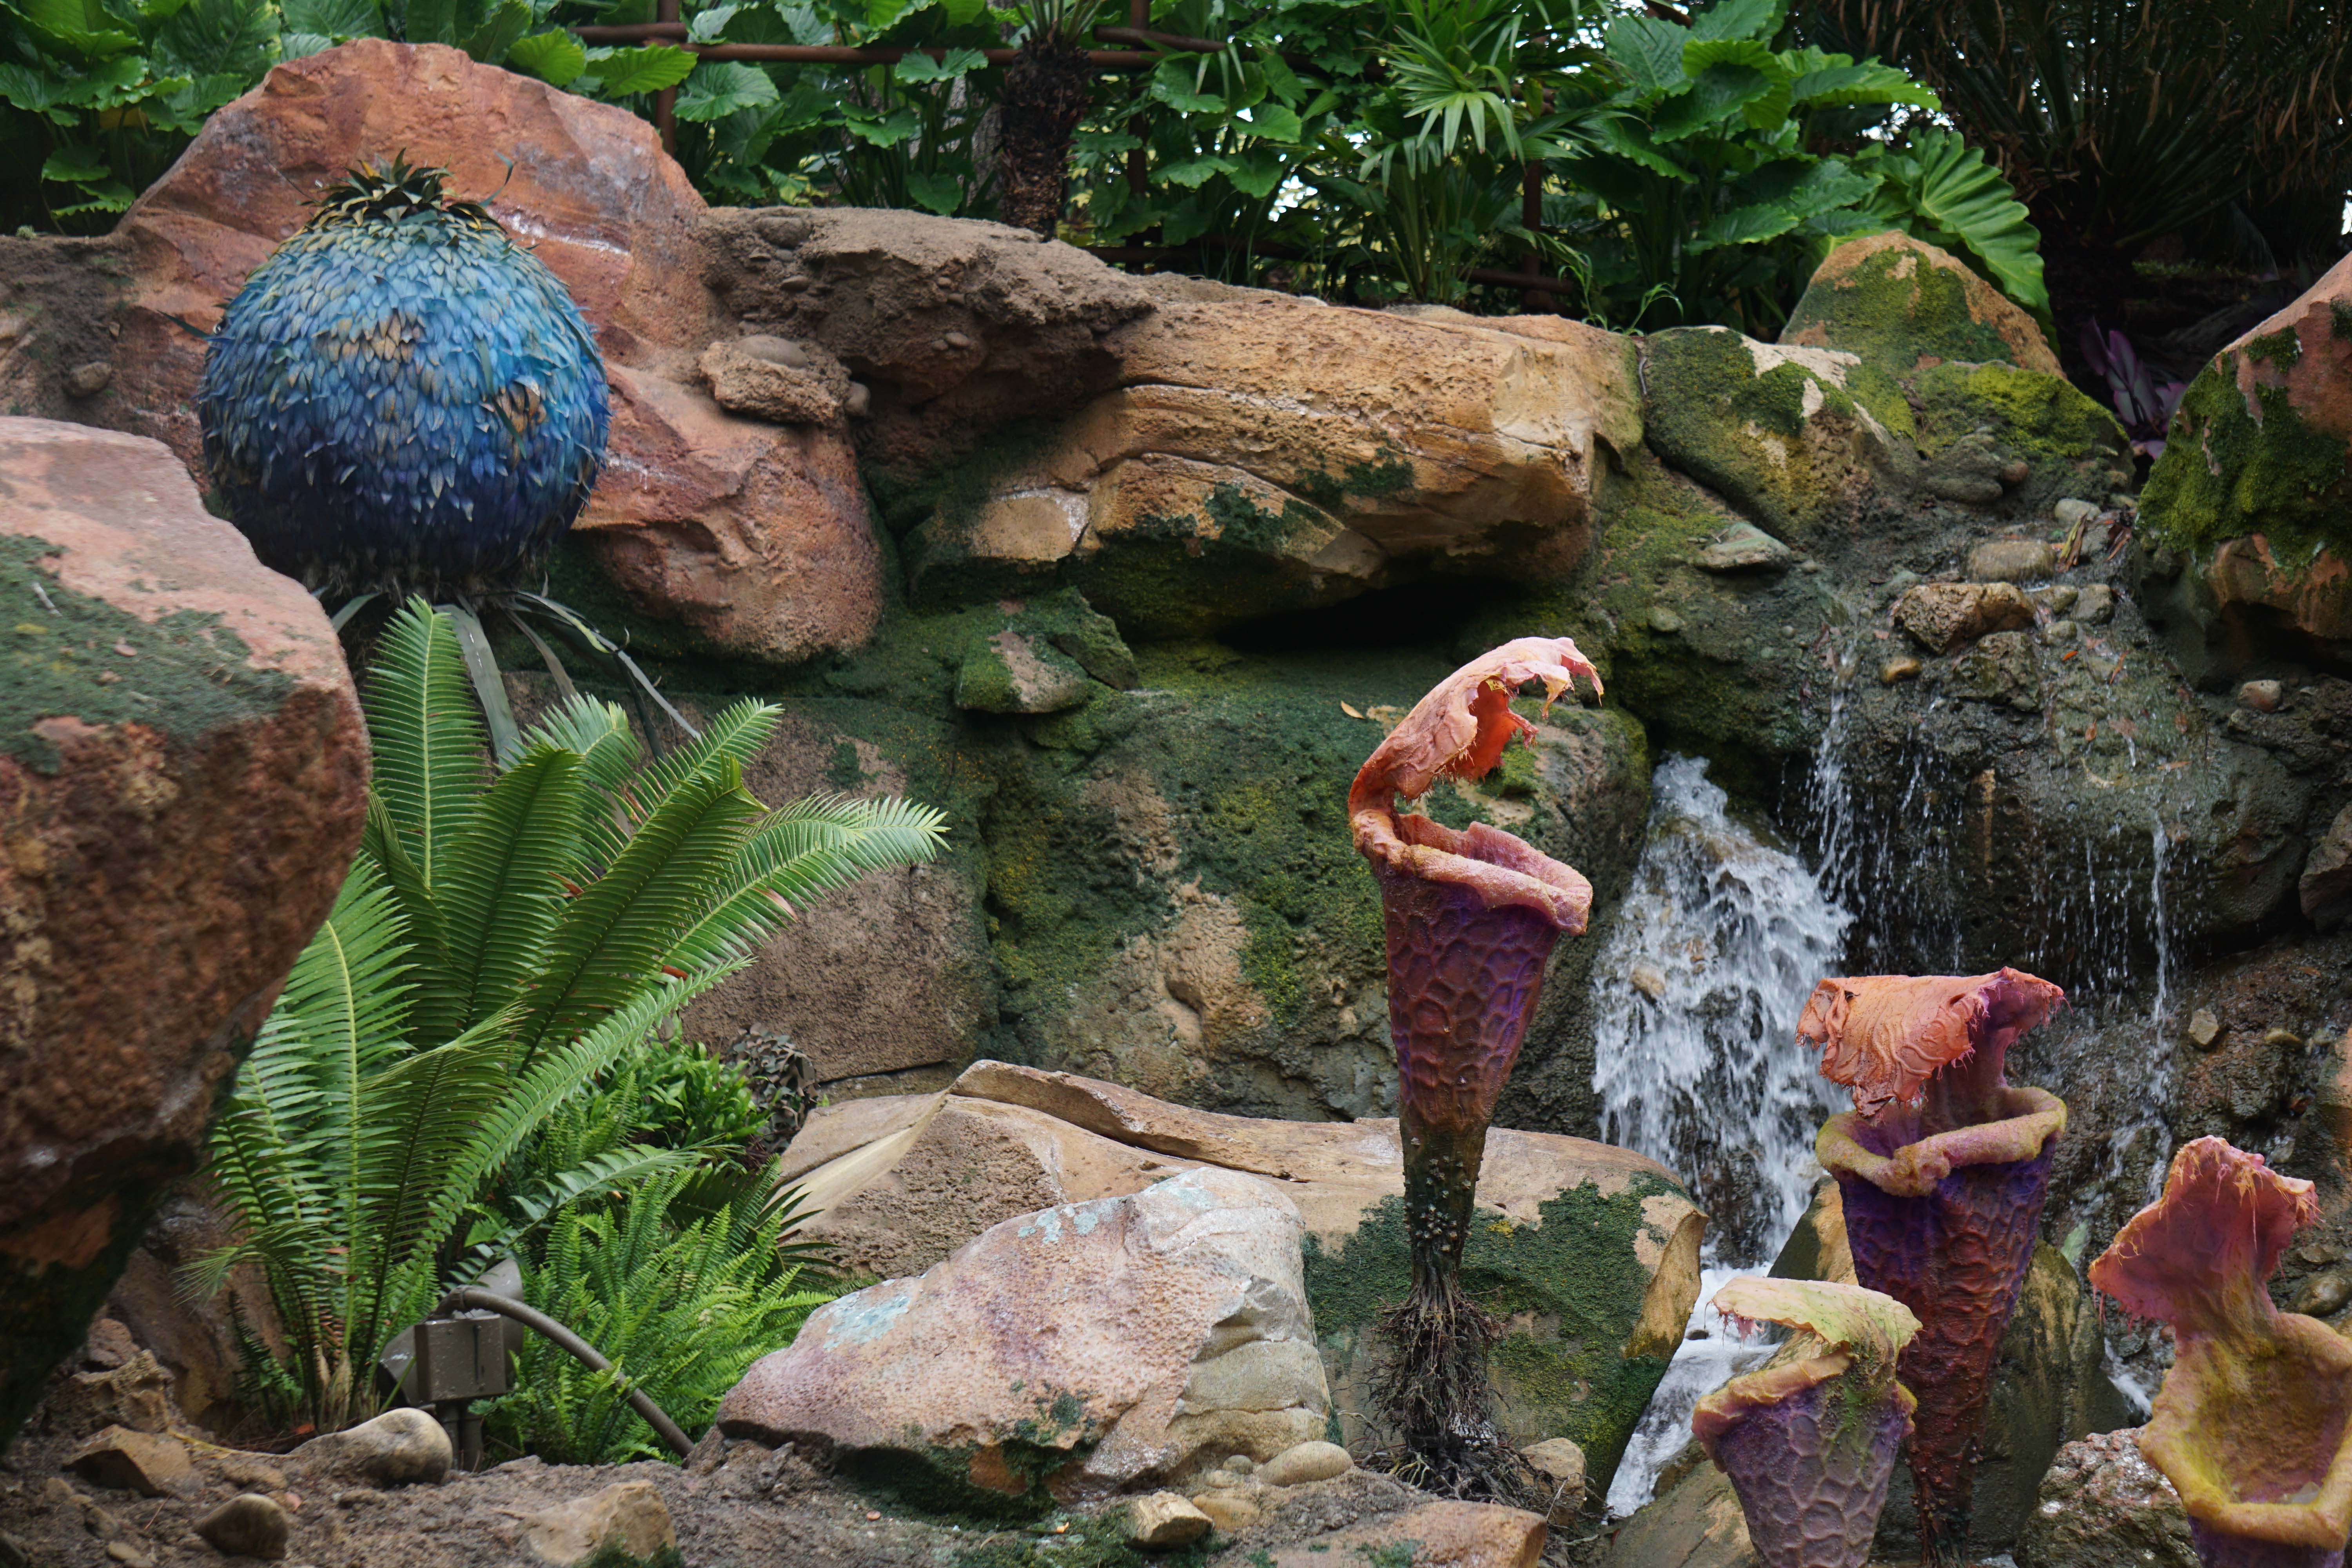 Everything you need to know about Pandora at Disney's Animal Kingdom